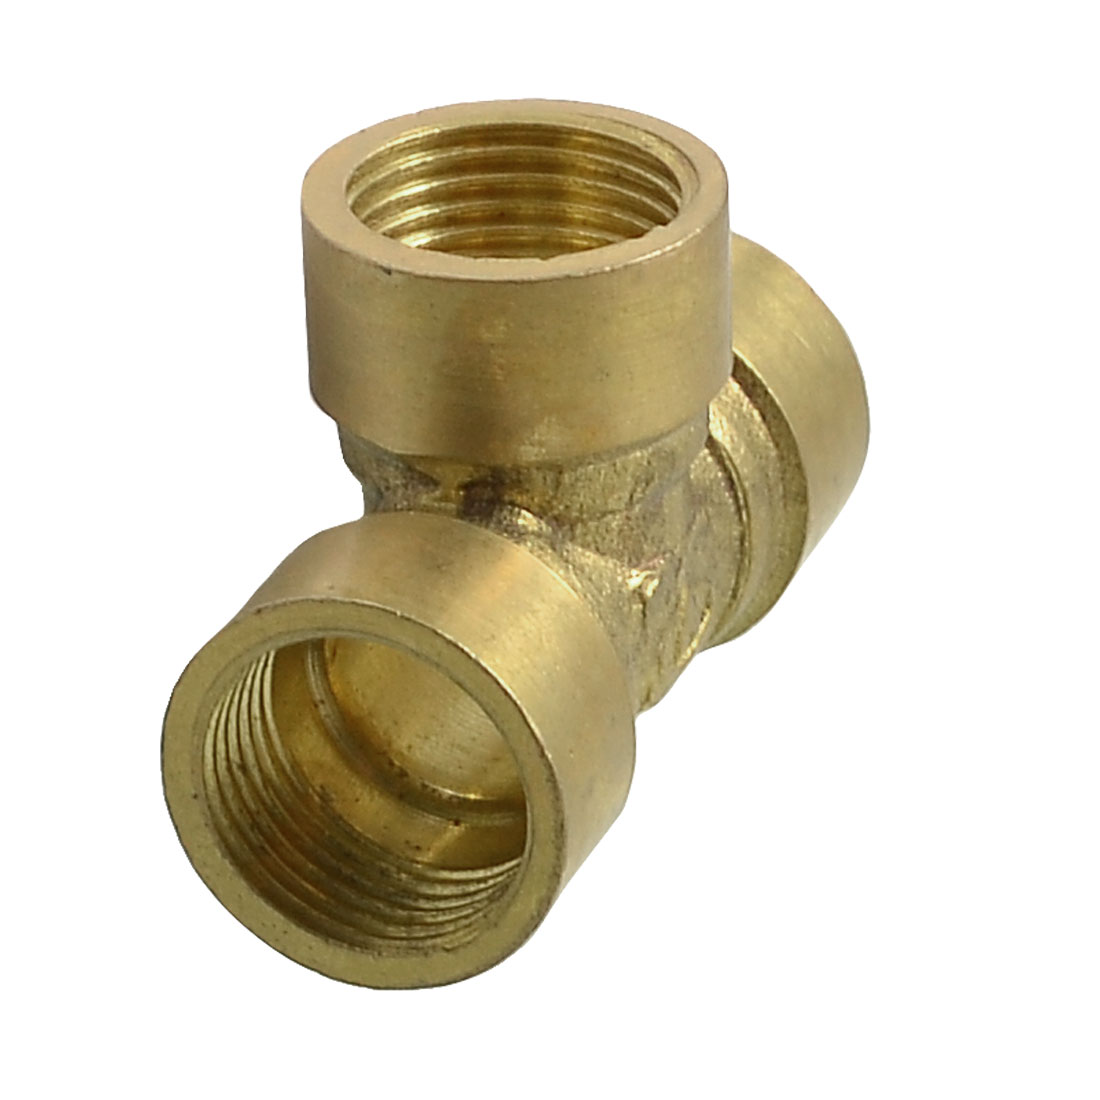 "Solid Brass Female 3/8"" PT Thread Water Hose Pipe Tee Connector"